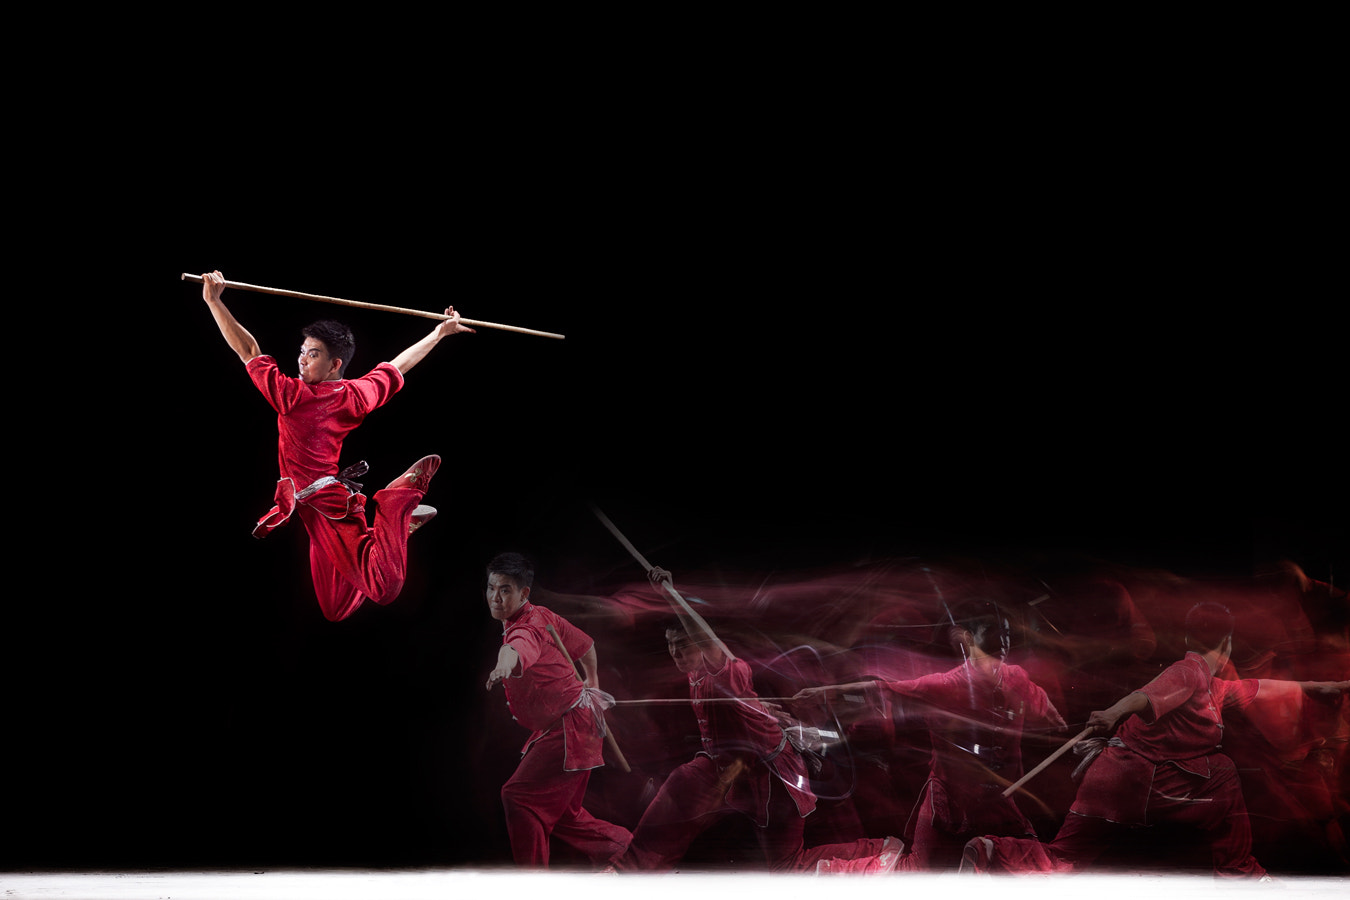 Photograph Wushu in motion by Erwin Lee on 500px